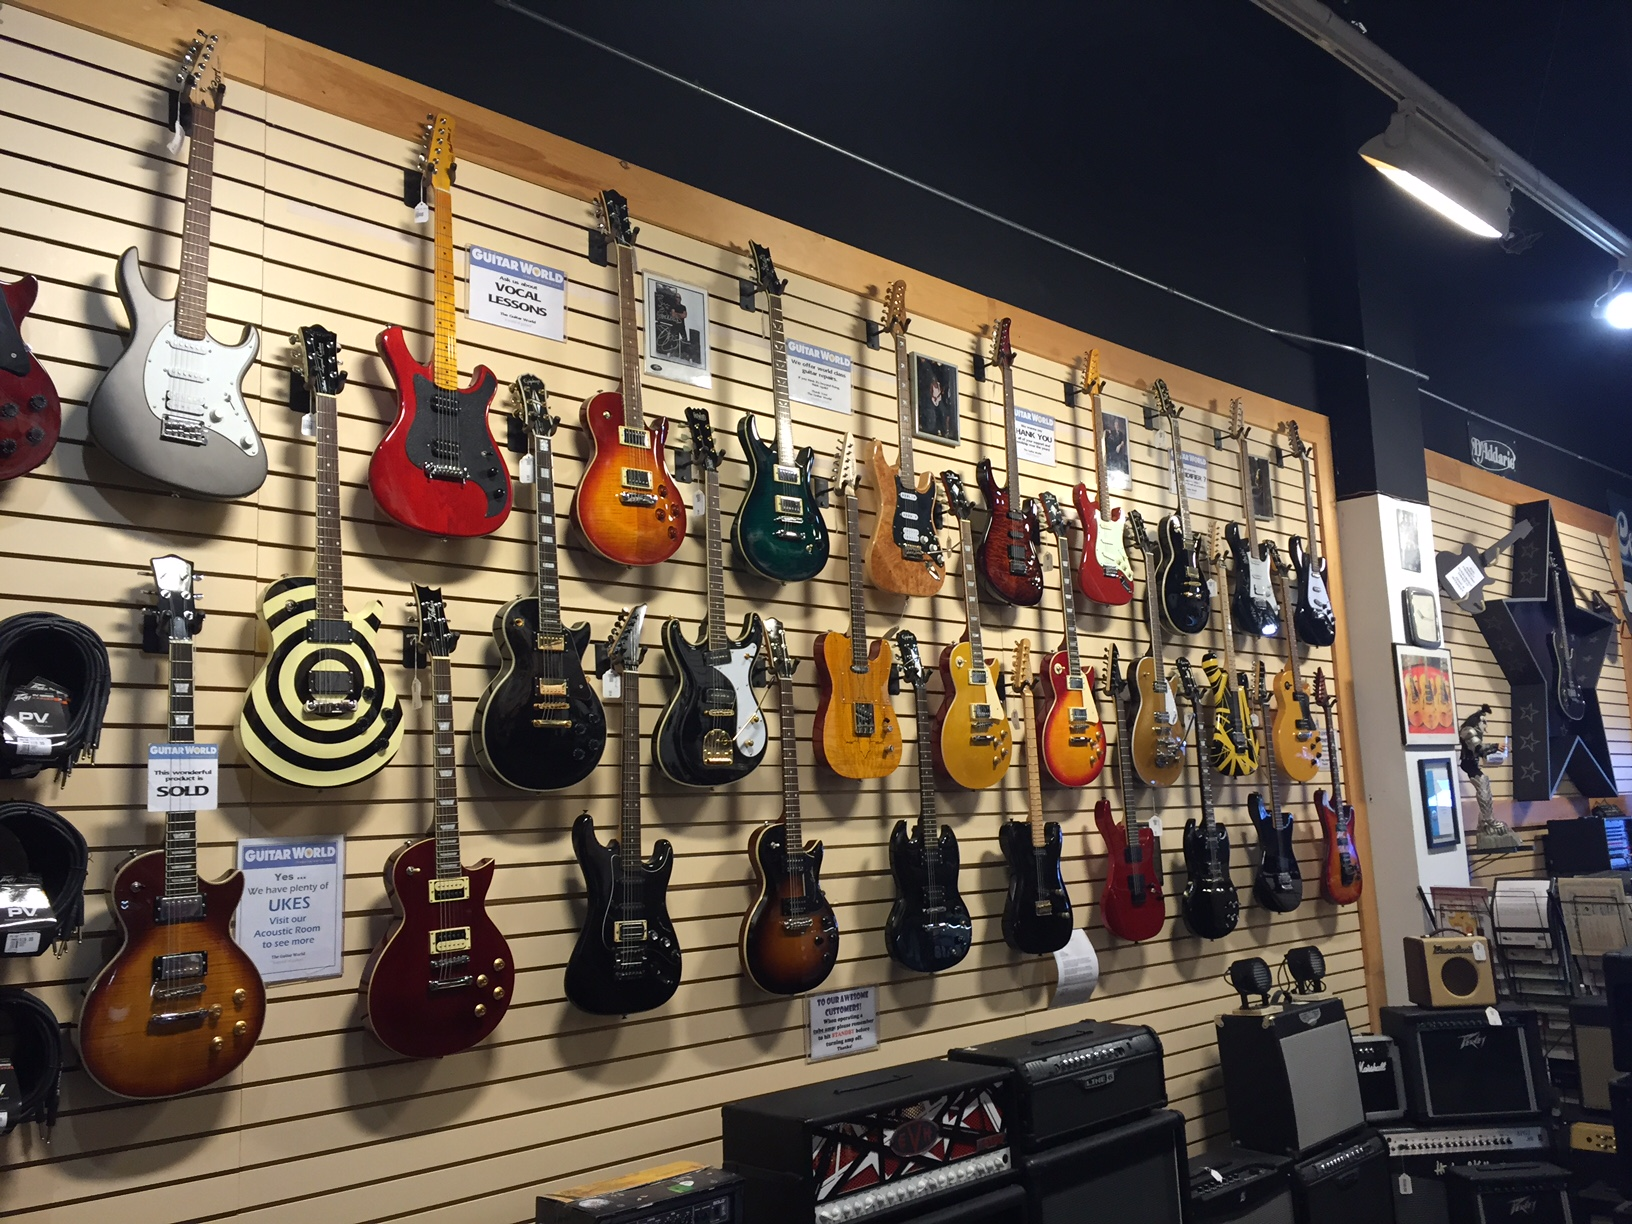 A small example of the large number of guitars in stock